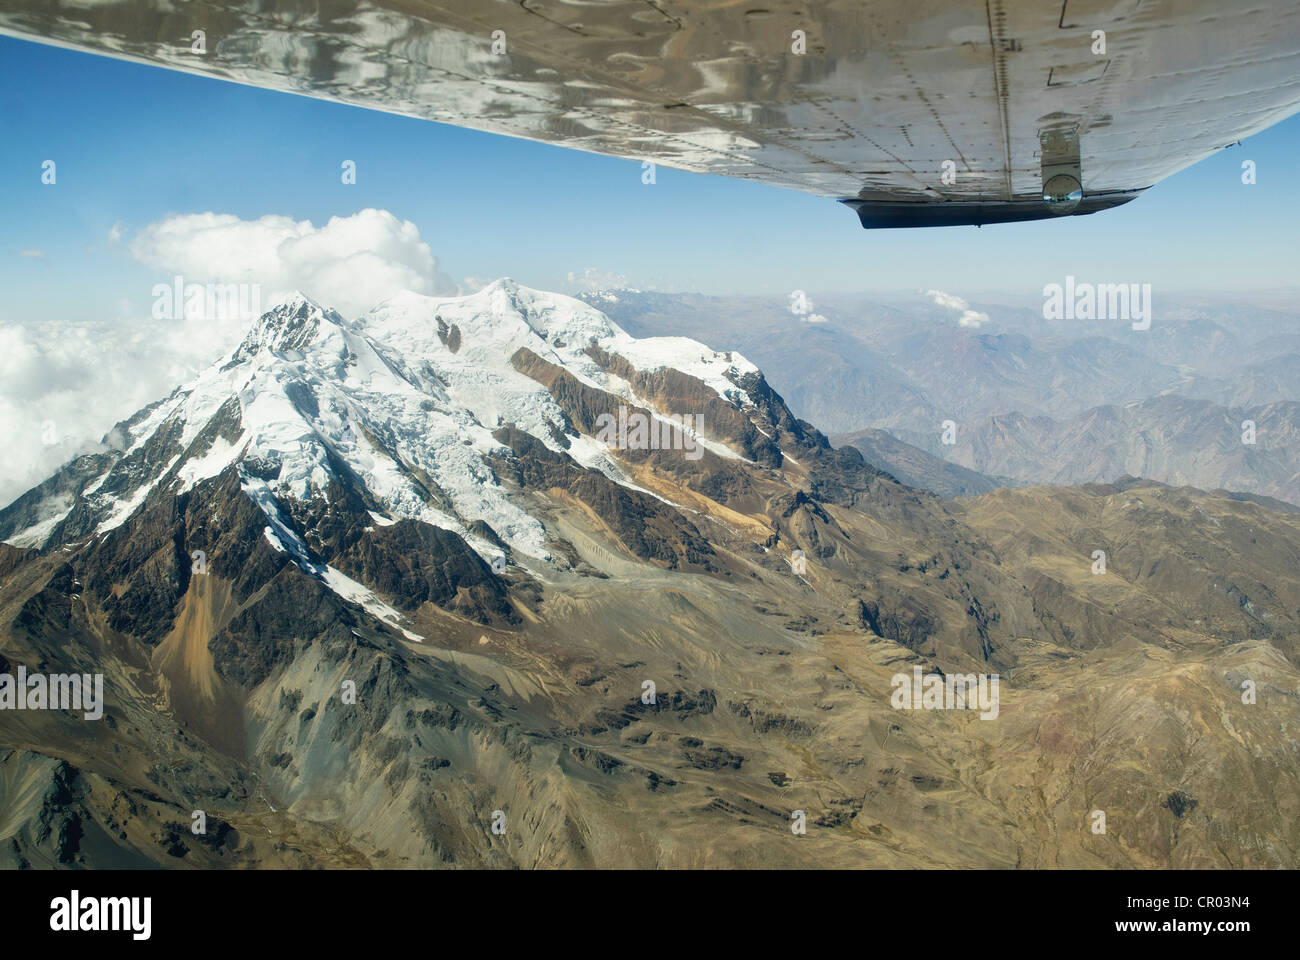 aerial view of Illimani mountain, 6400 meters above sea level - Stock Image